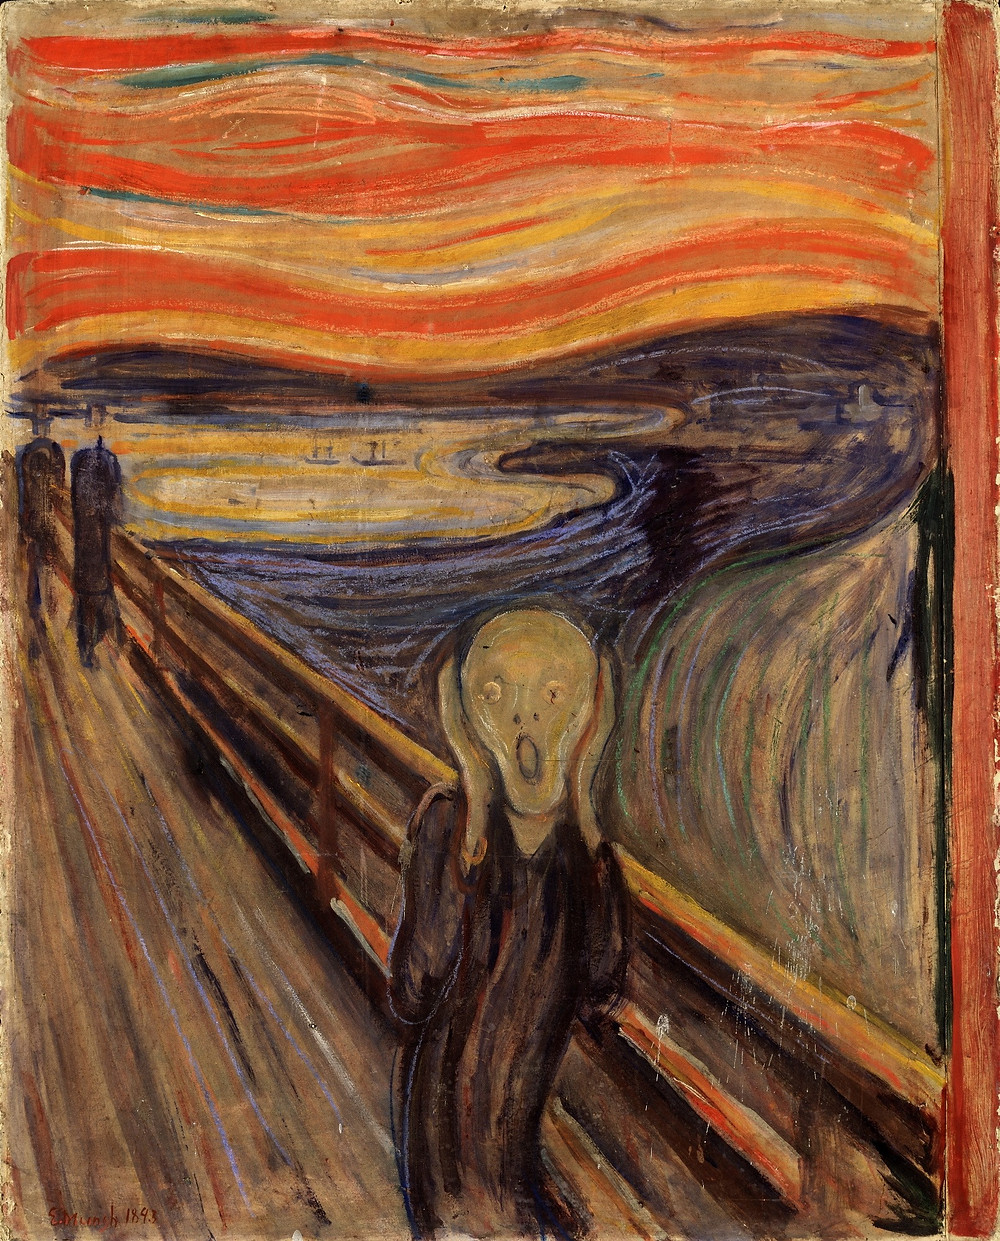 The_Scream_by_Edvard_Munch,_1893_-_Nasjonalgalleriet.png